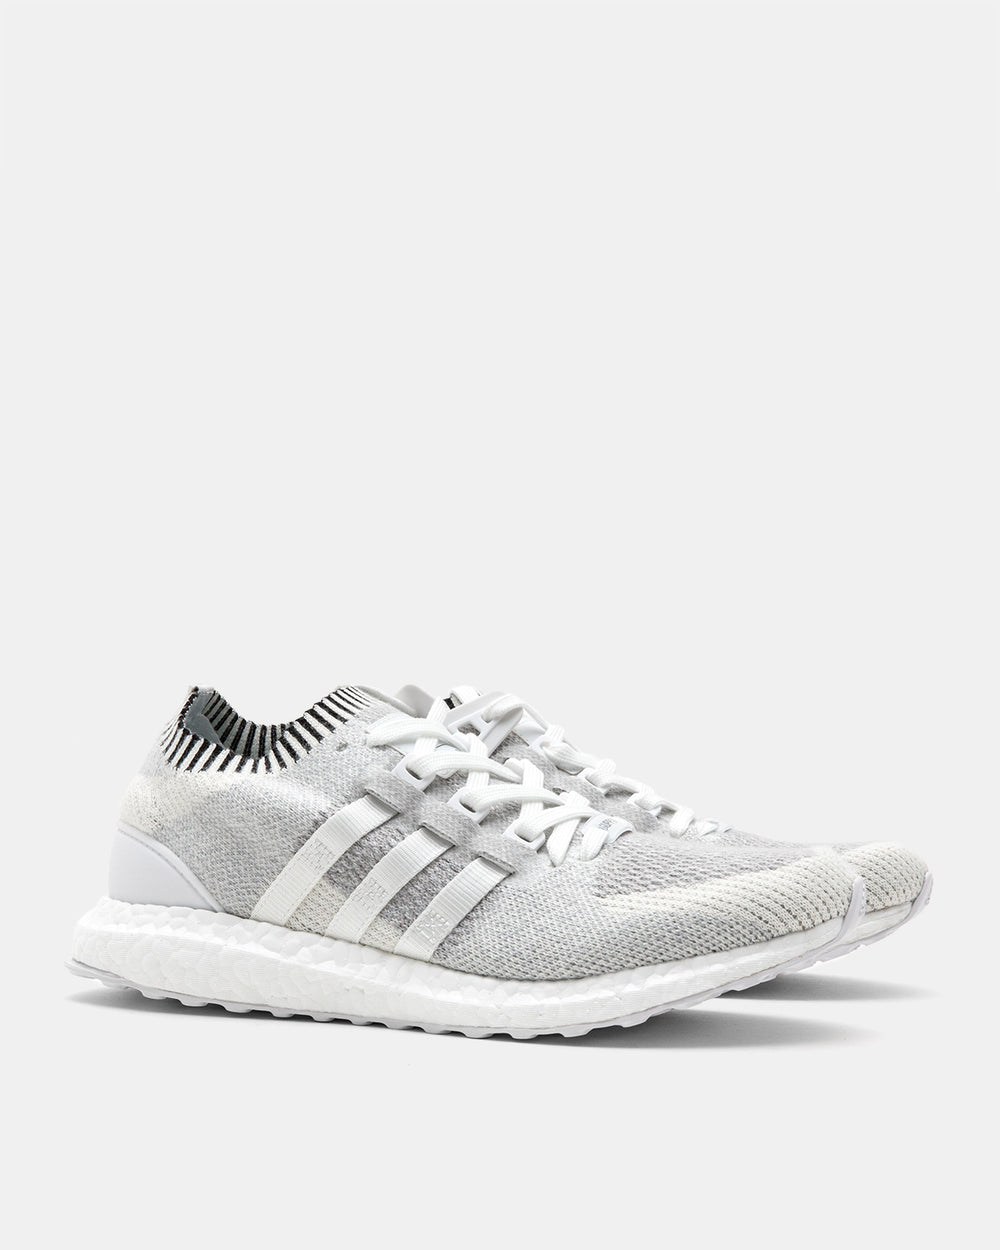 adidas - EQT Support Ultra Pk (Vintage White | Running White)